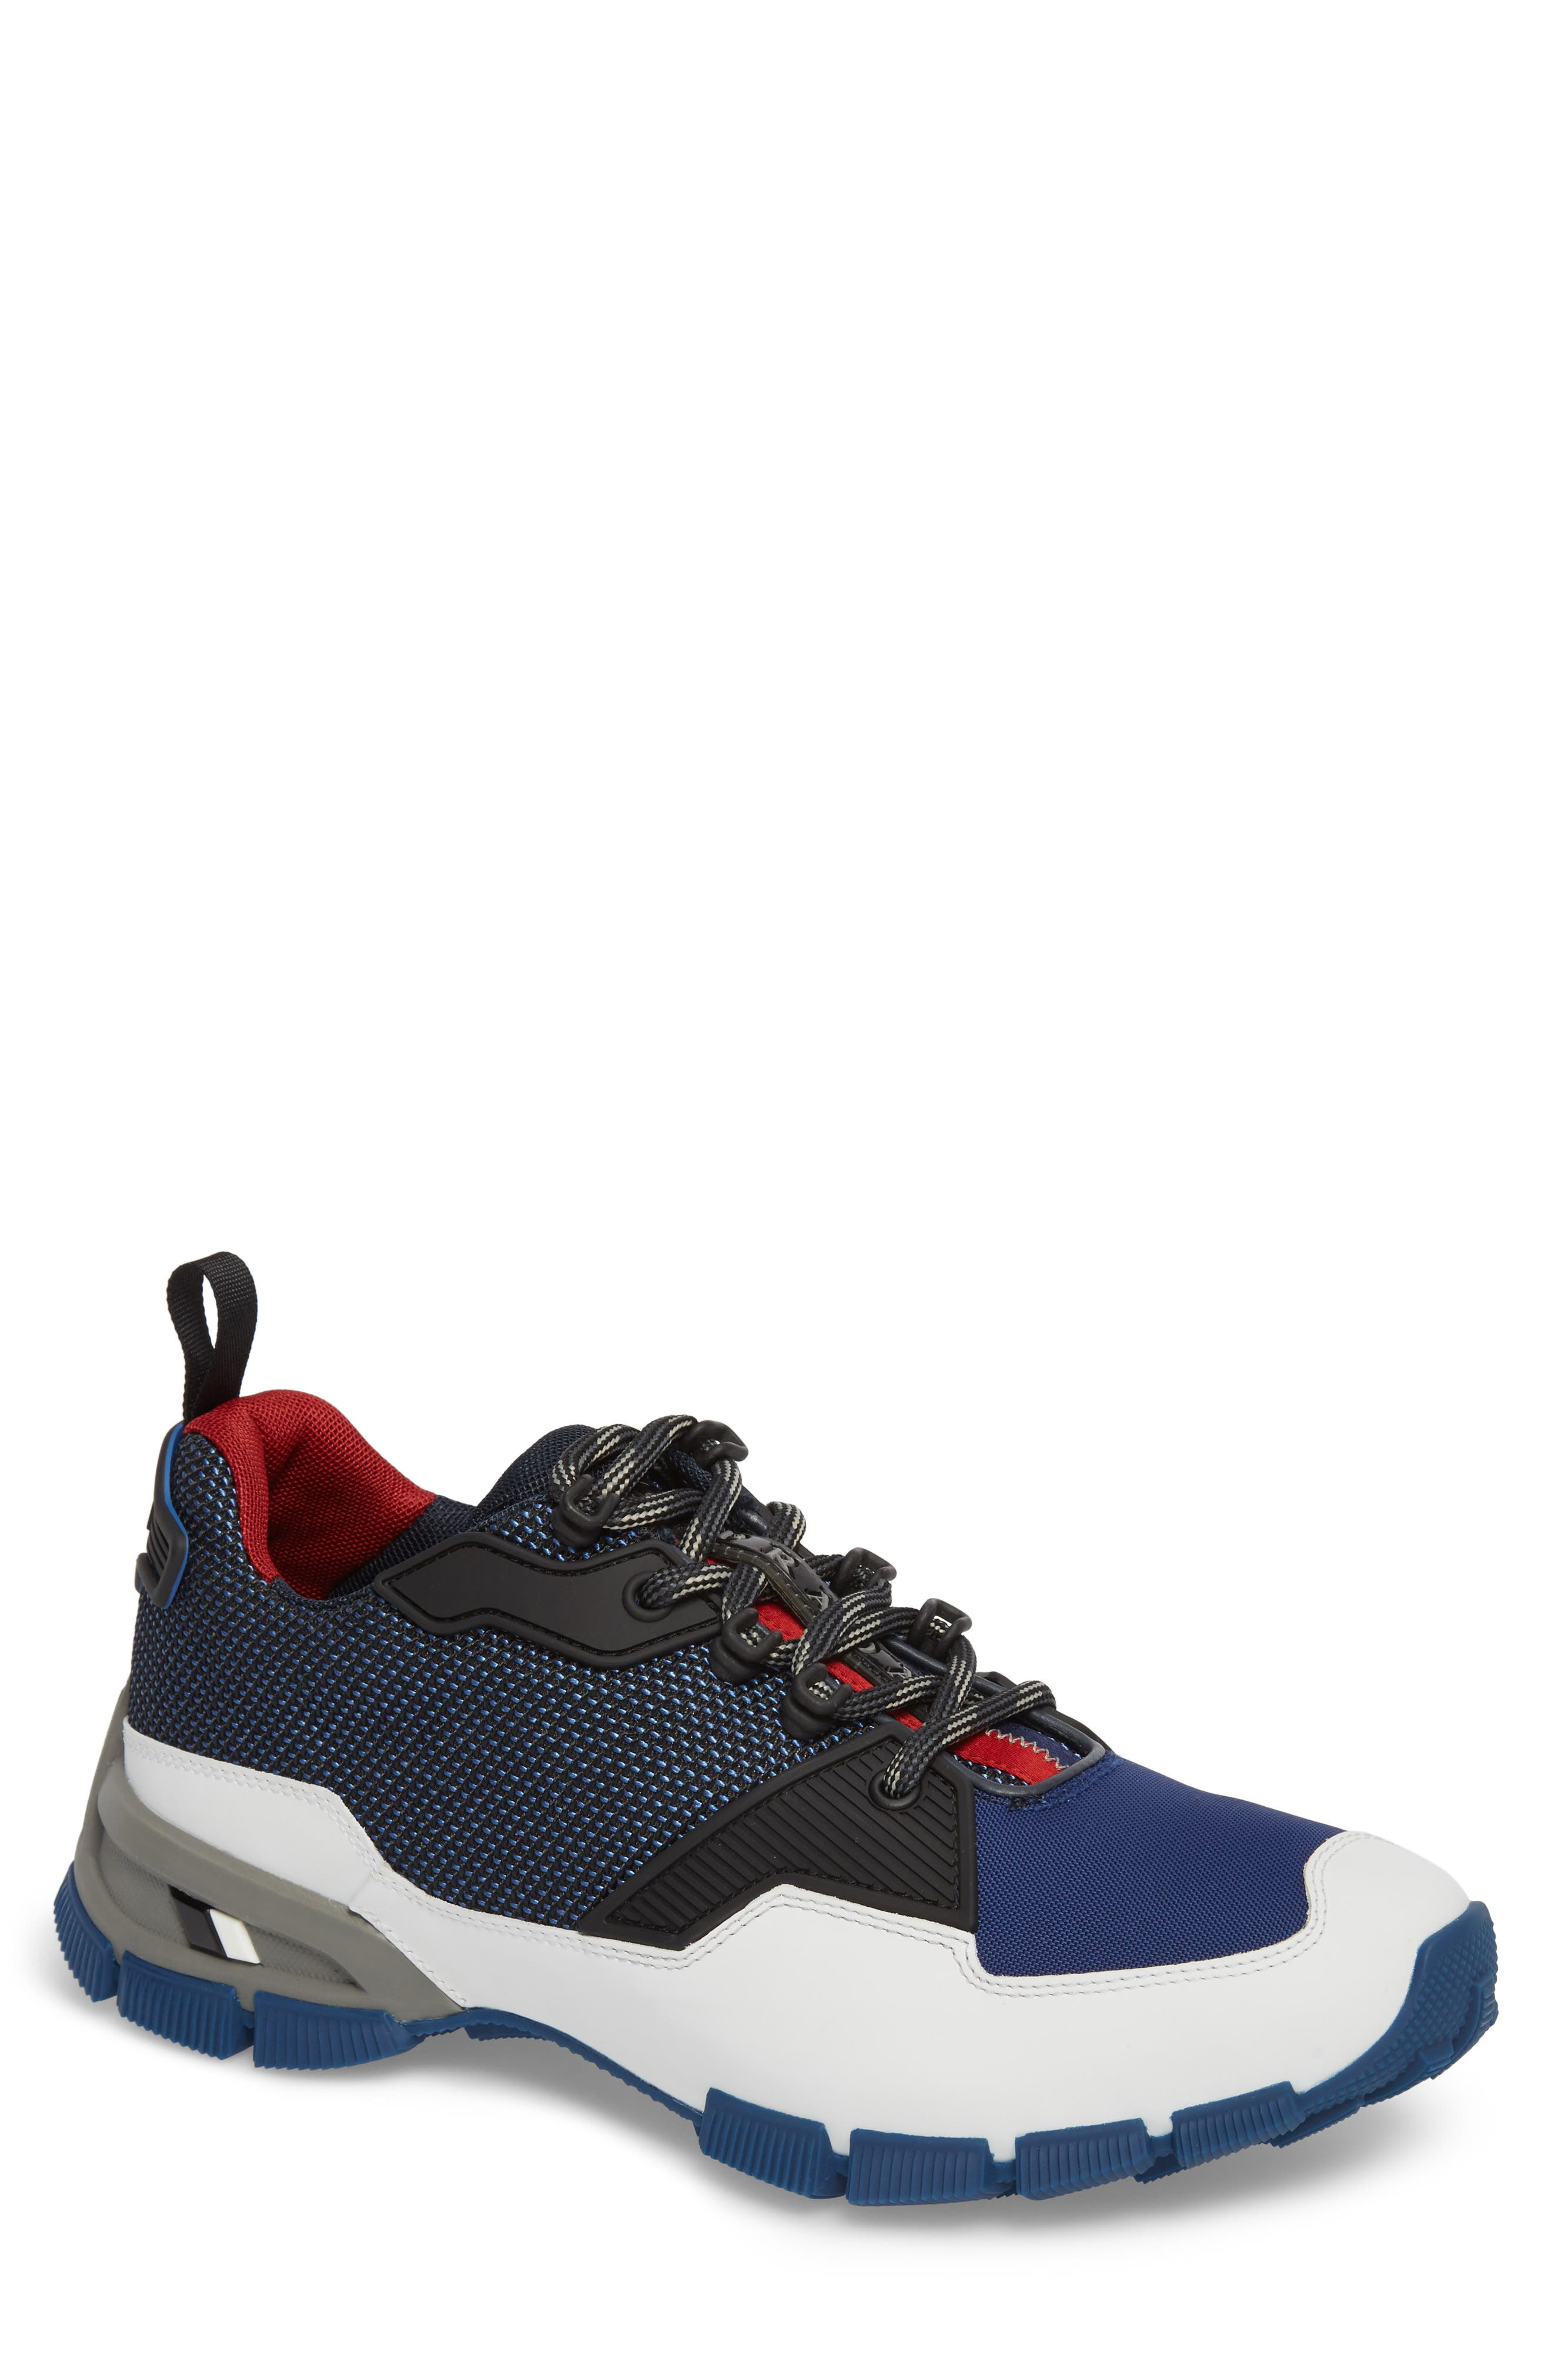 Linea Rossa Tech Lug Sneaker,                         Main,                         color, 400